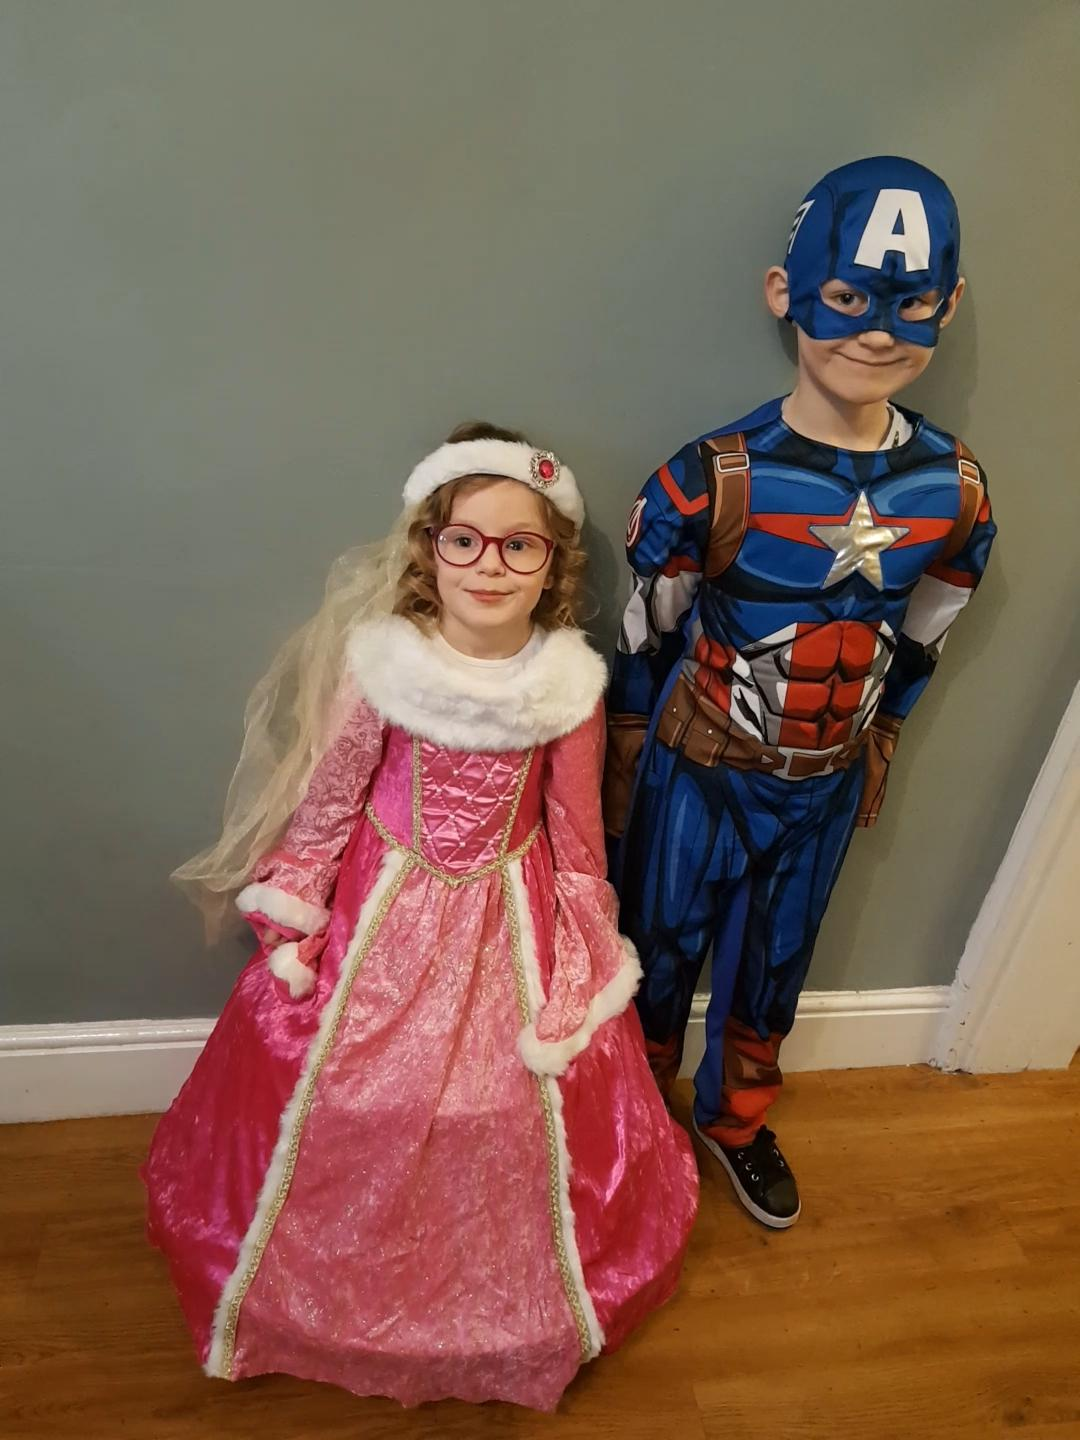 Droitwich Advertiser: Aurora as Princess Aurora and Spencer as captain America